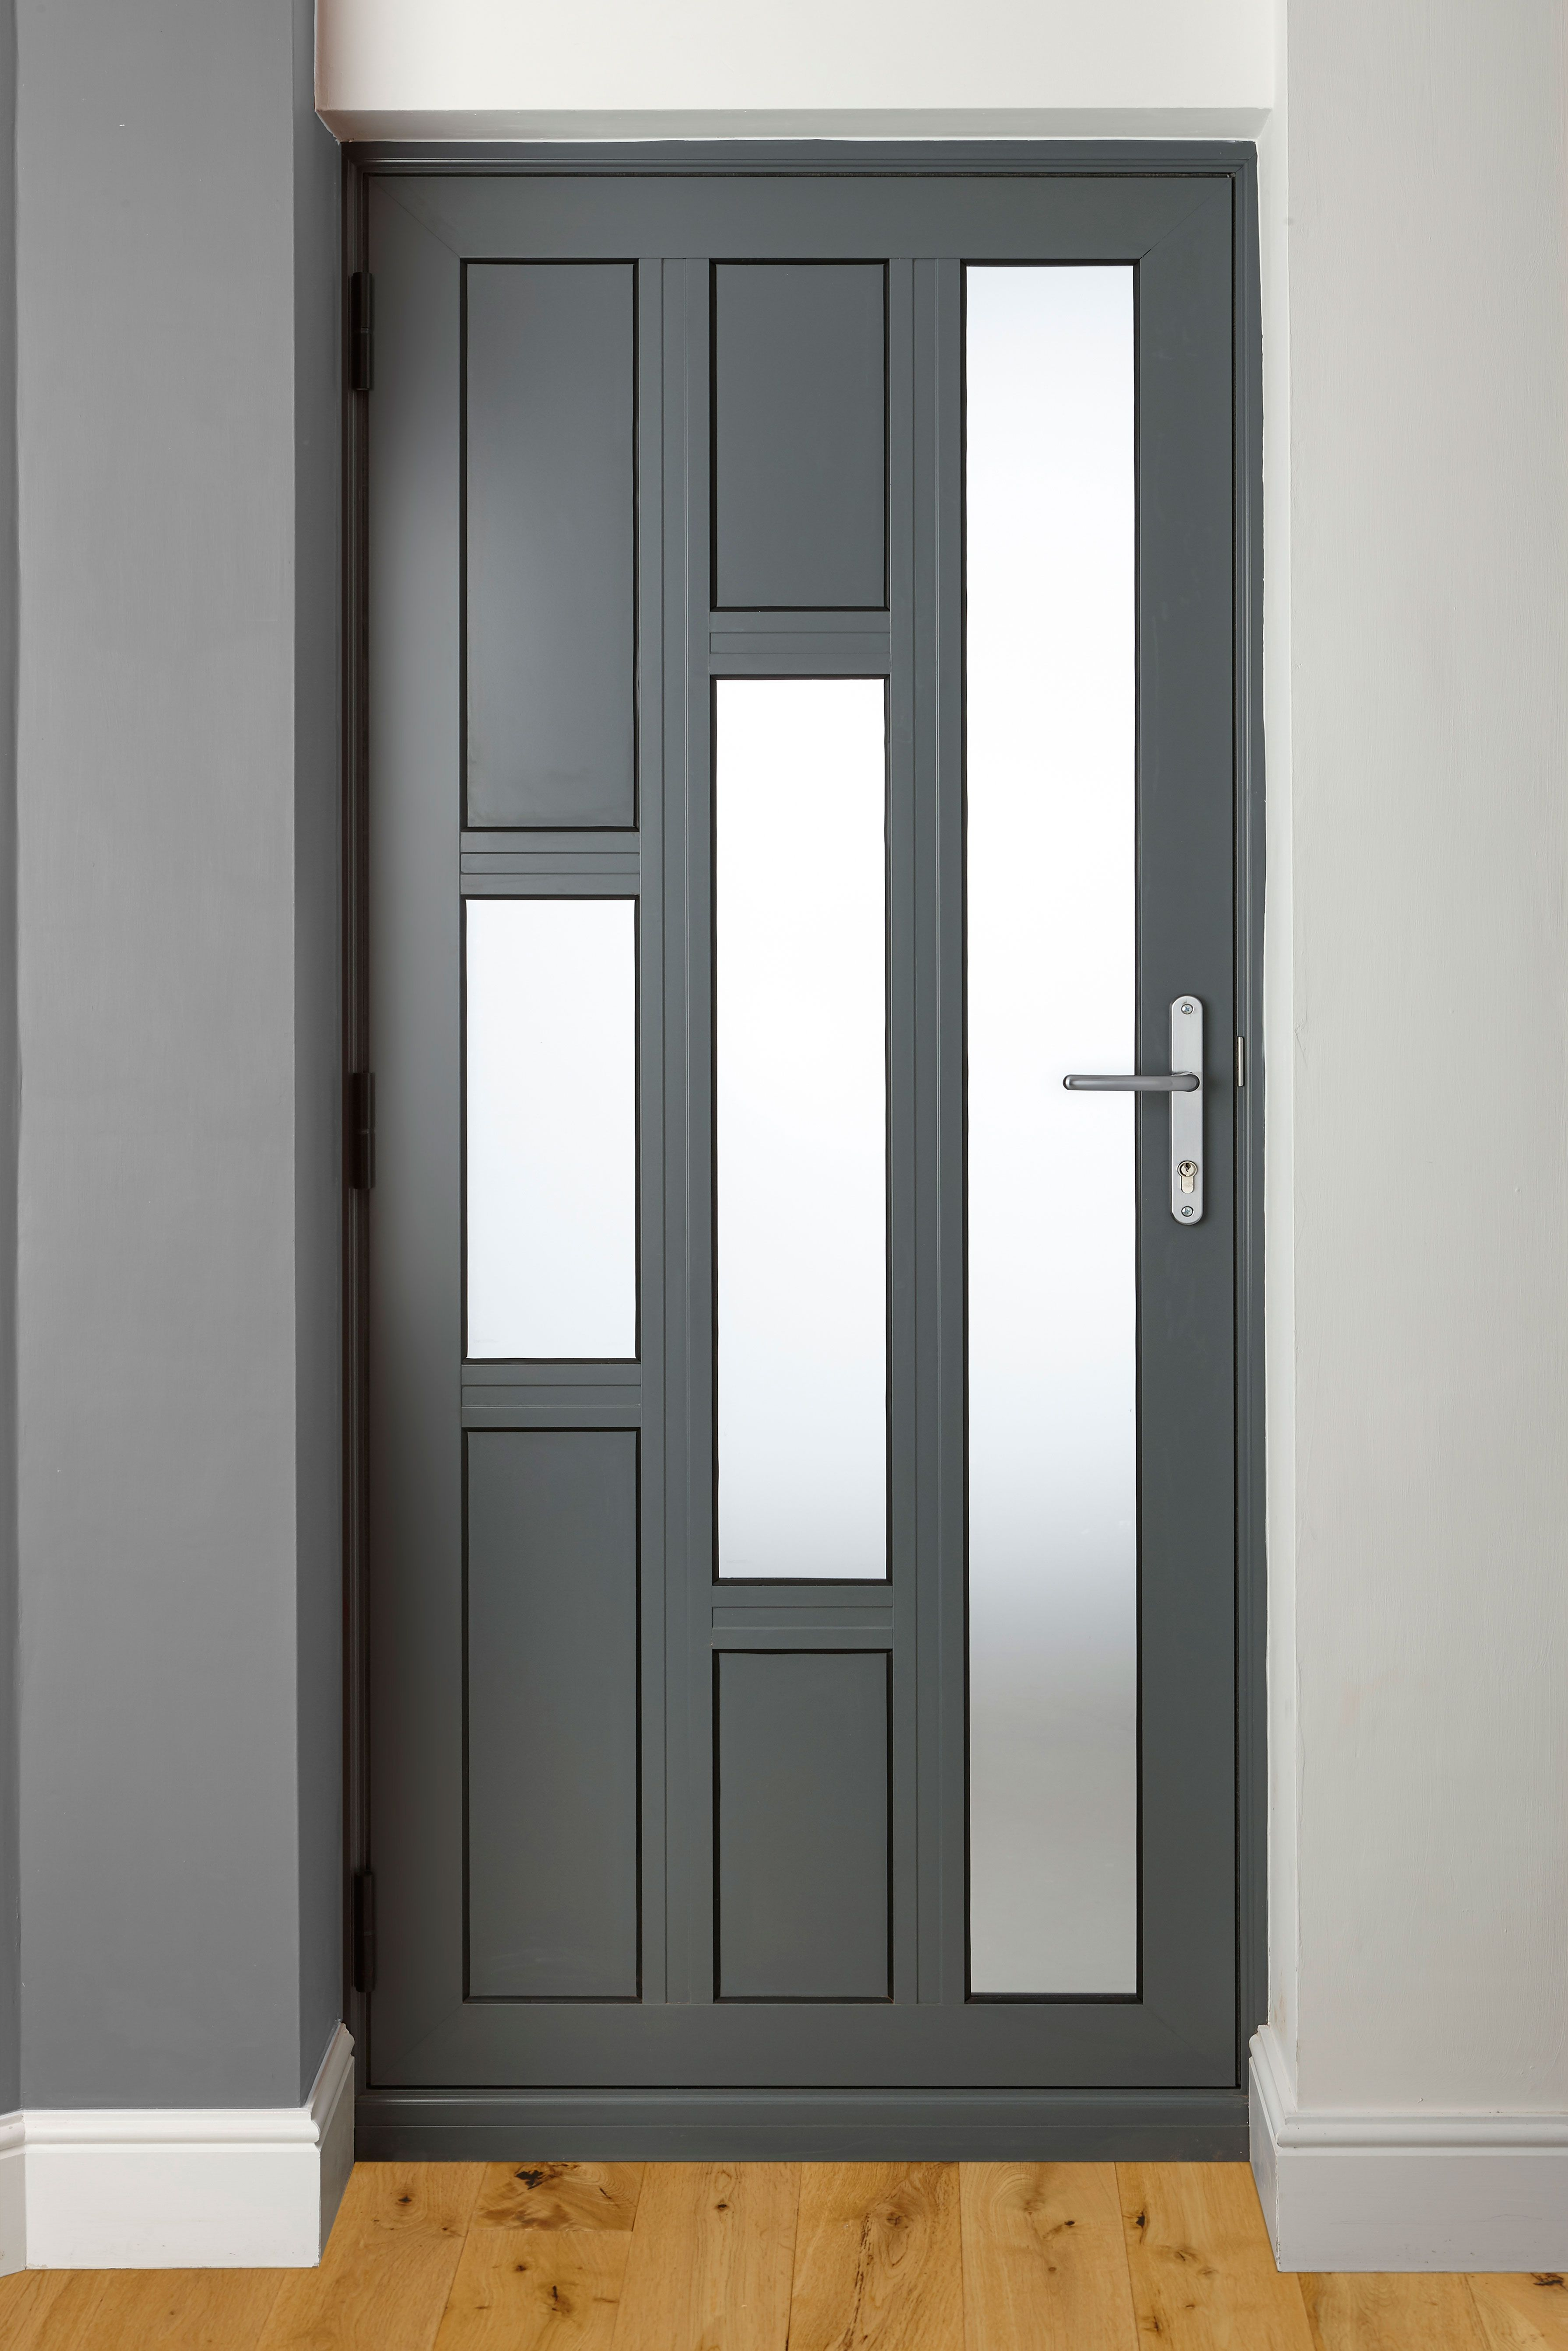 Aluminium Haustür Toronto High Quality Aluminium Doors From Joedan Home Improvements Near